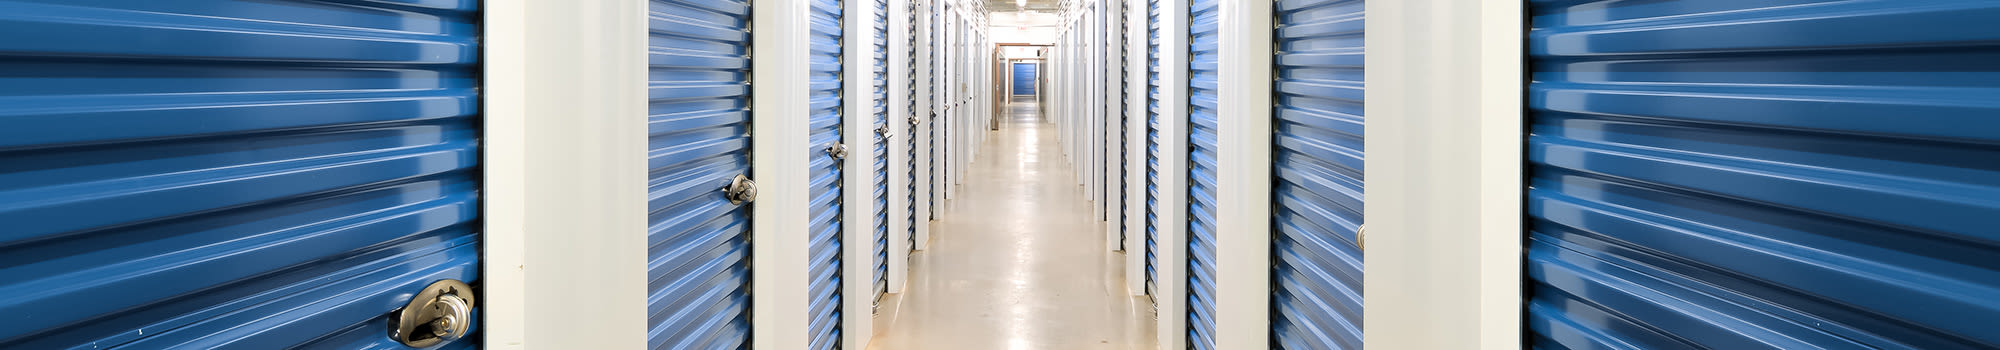 Climate controlled storage at Hawai'i Self Storage in Mililani